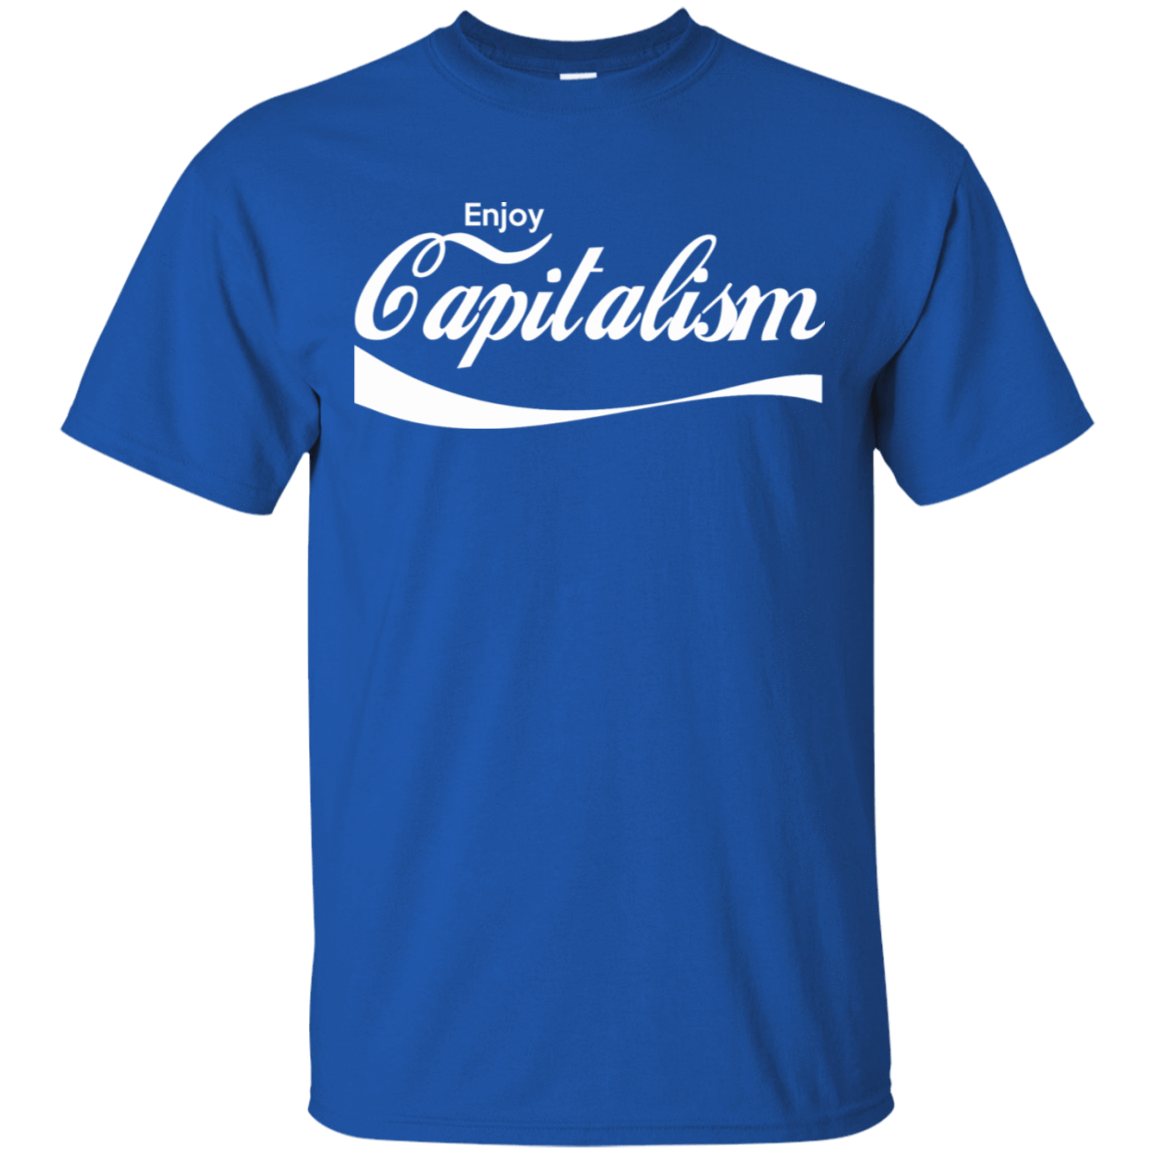 Enjoy Capitalism 22-110-74209510-249 - Tee Ript